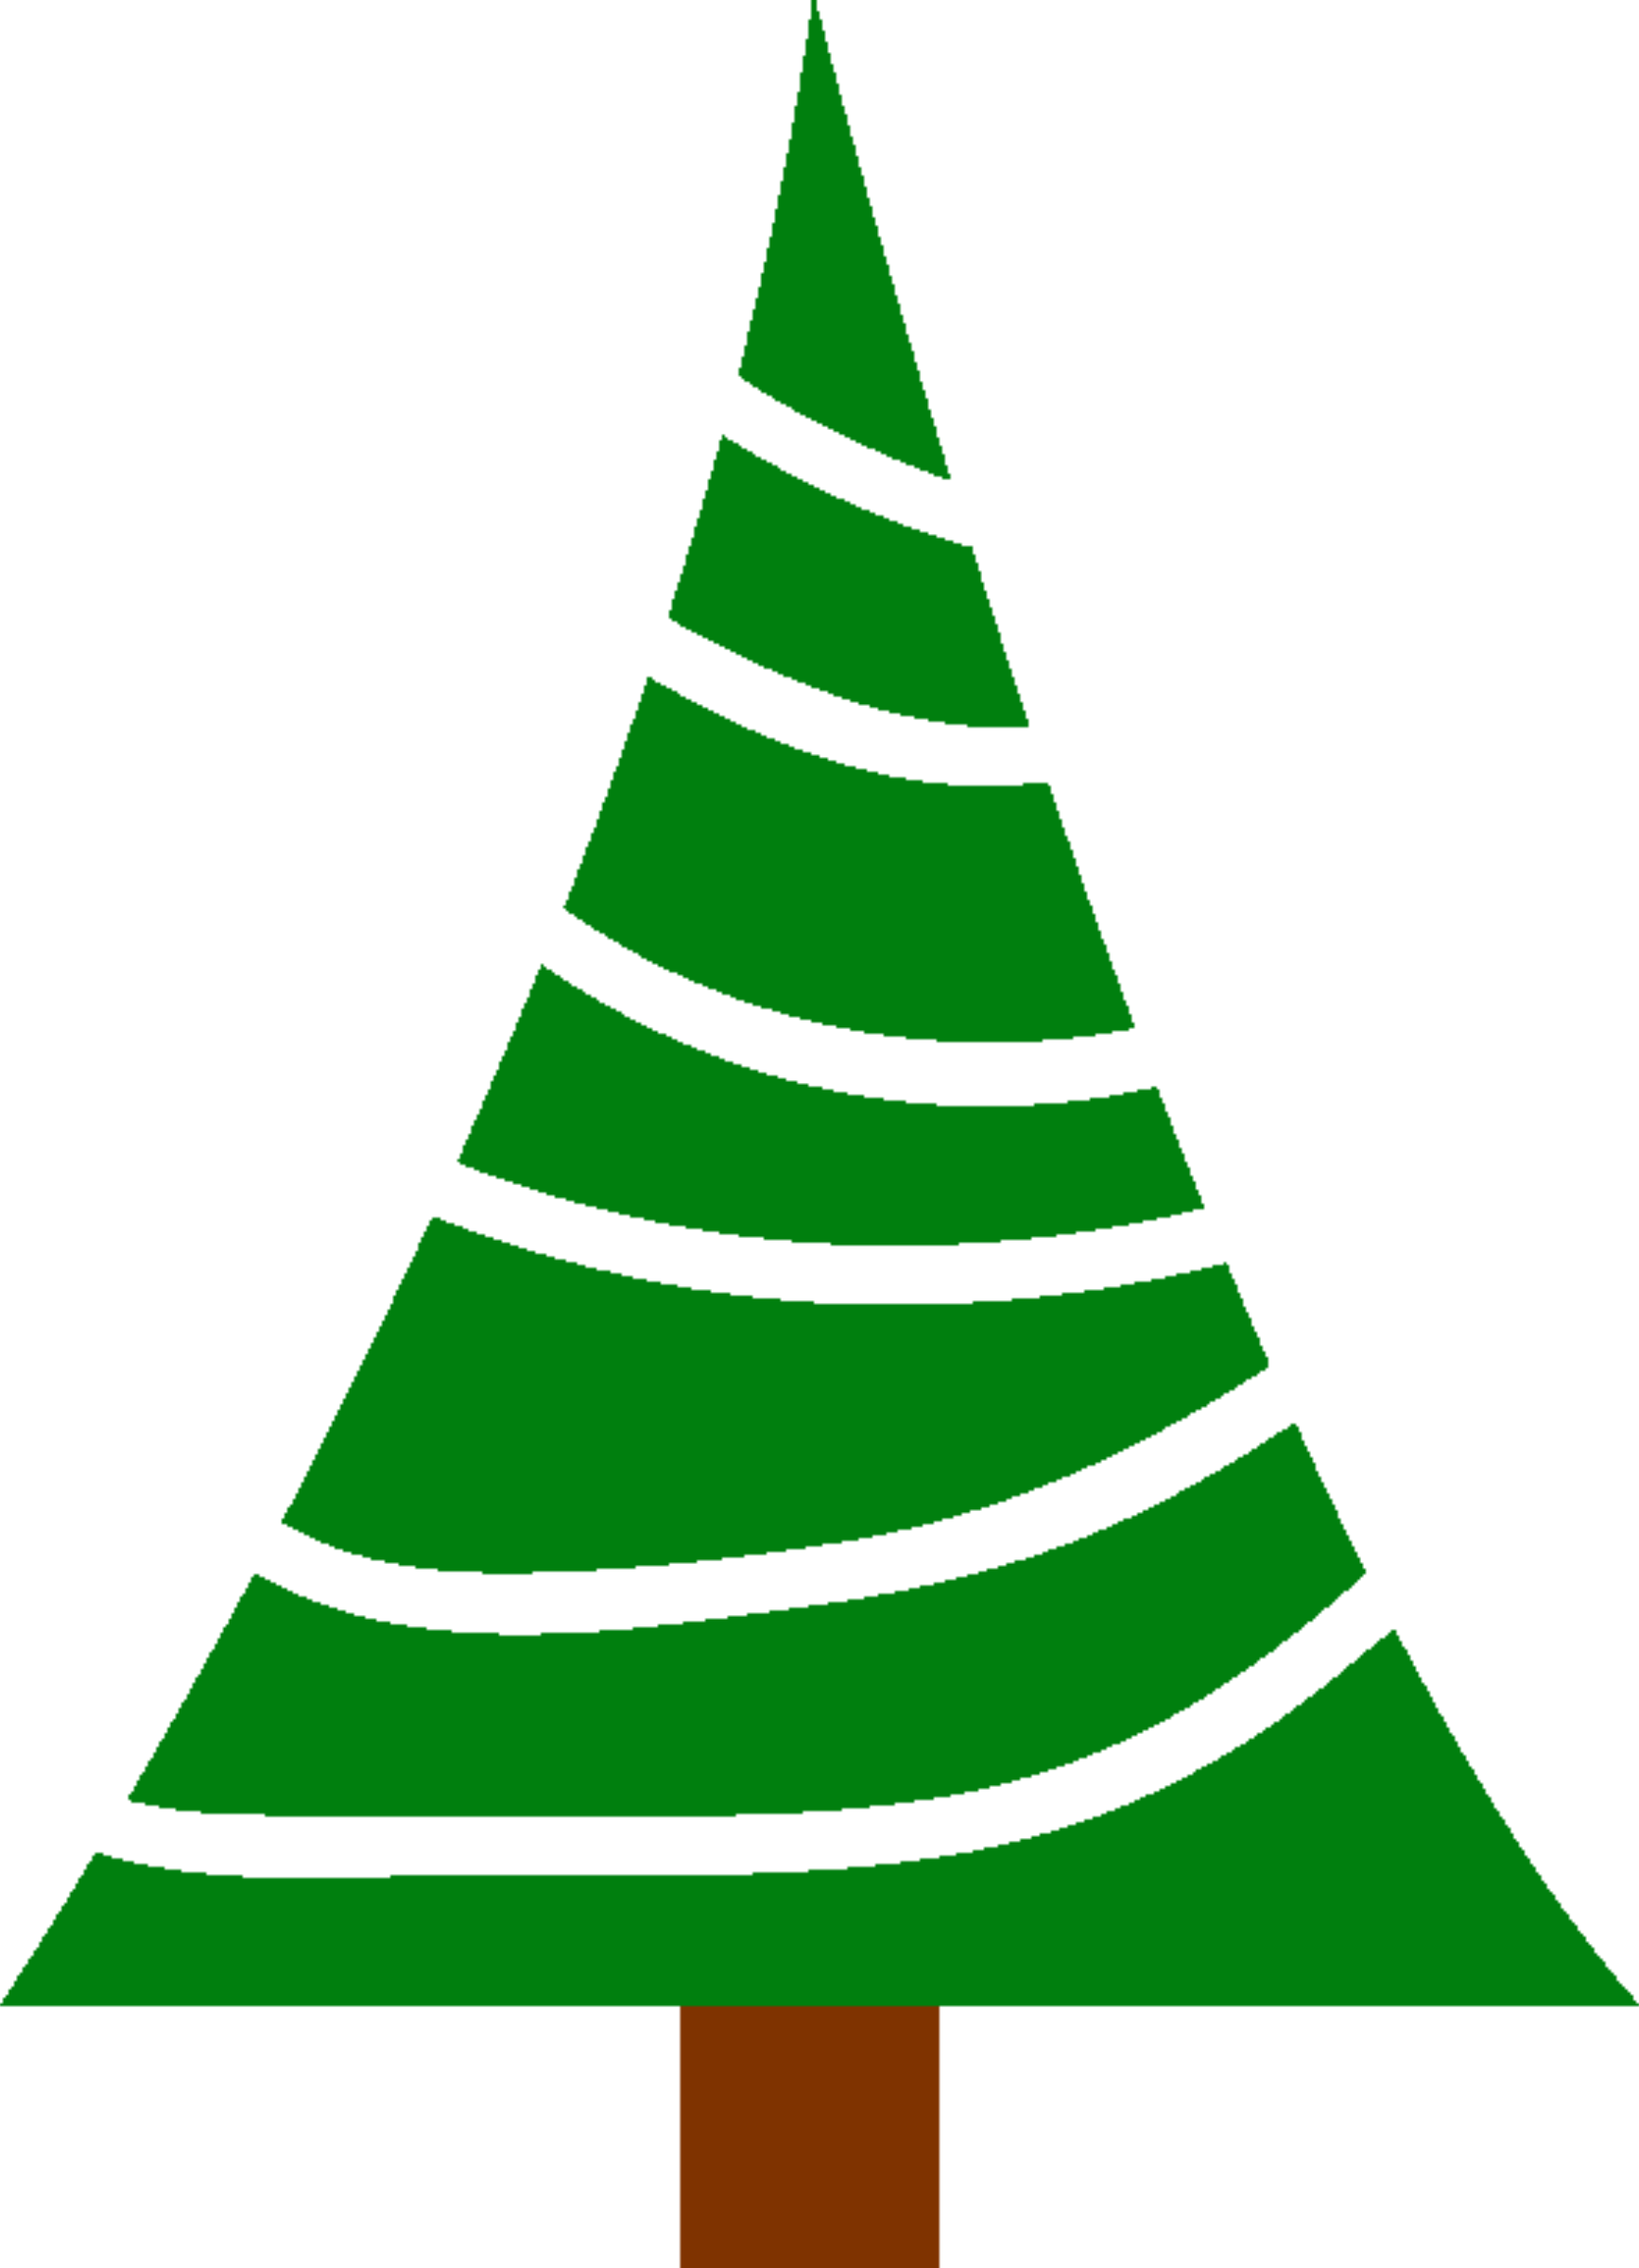 Christmas tree clipart simple picture black and white stock Clipart - Simple christmas tree picture black and white stock